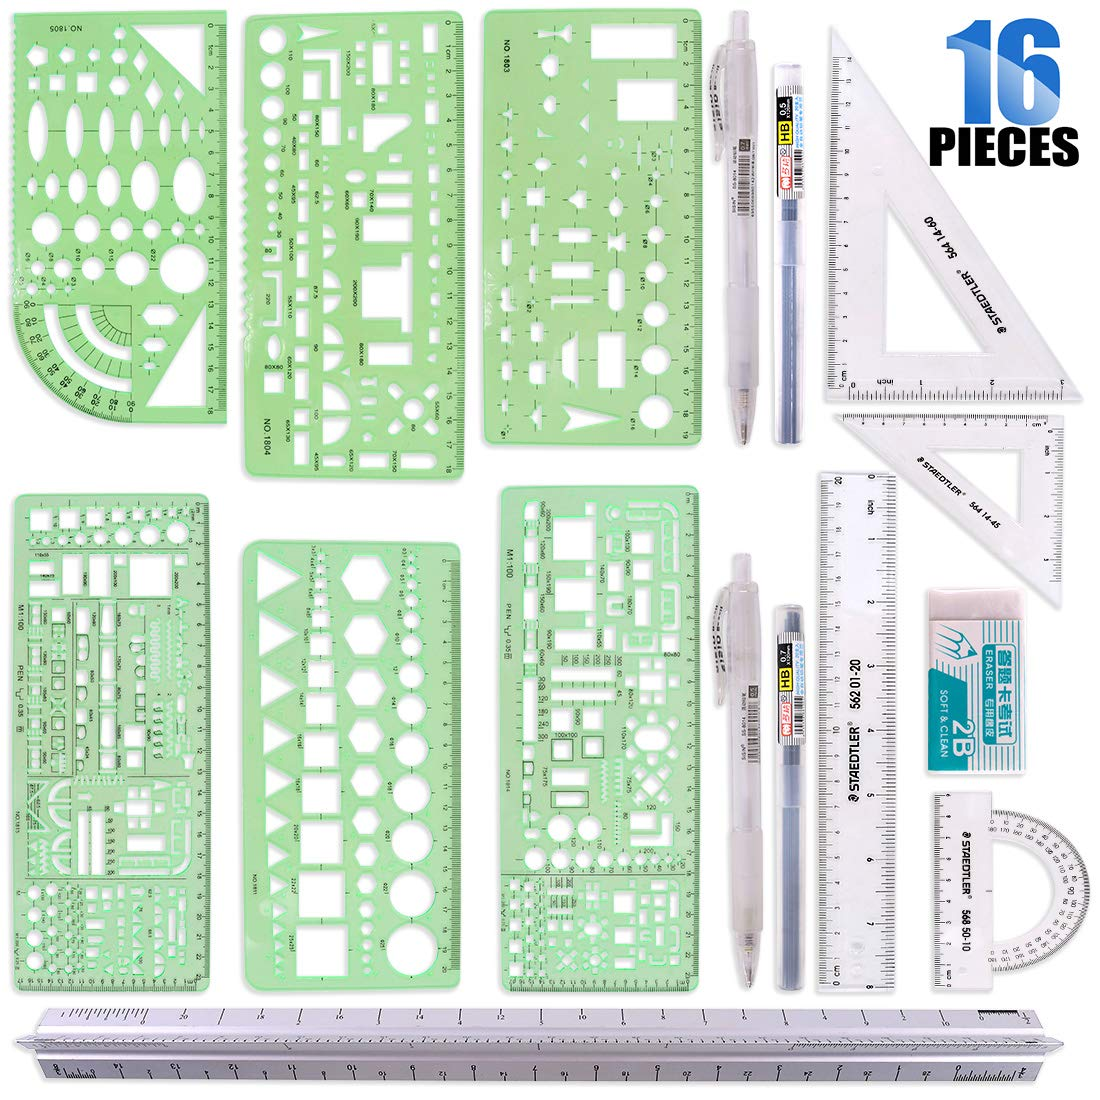 Glarks 16 Pieces Measuring Templates Building Formwork Stencils Geometric Drawing Rulers and Triangular Architect Scale Ruler with Pencil, Pencil Lead Refills, Eraser for Office and School by Glarks